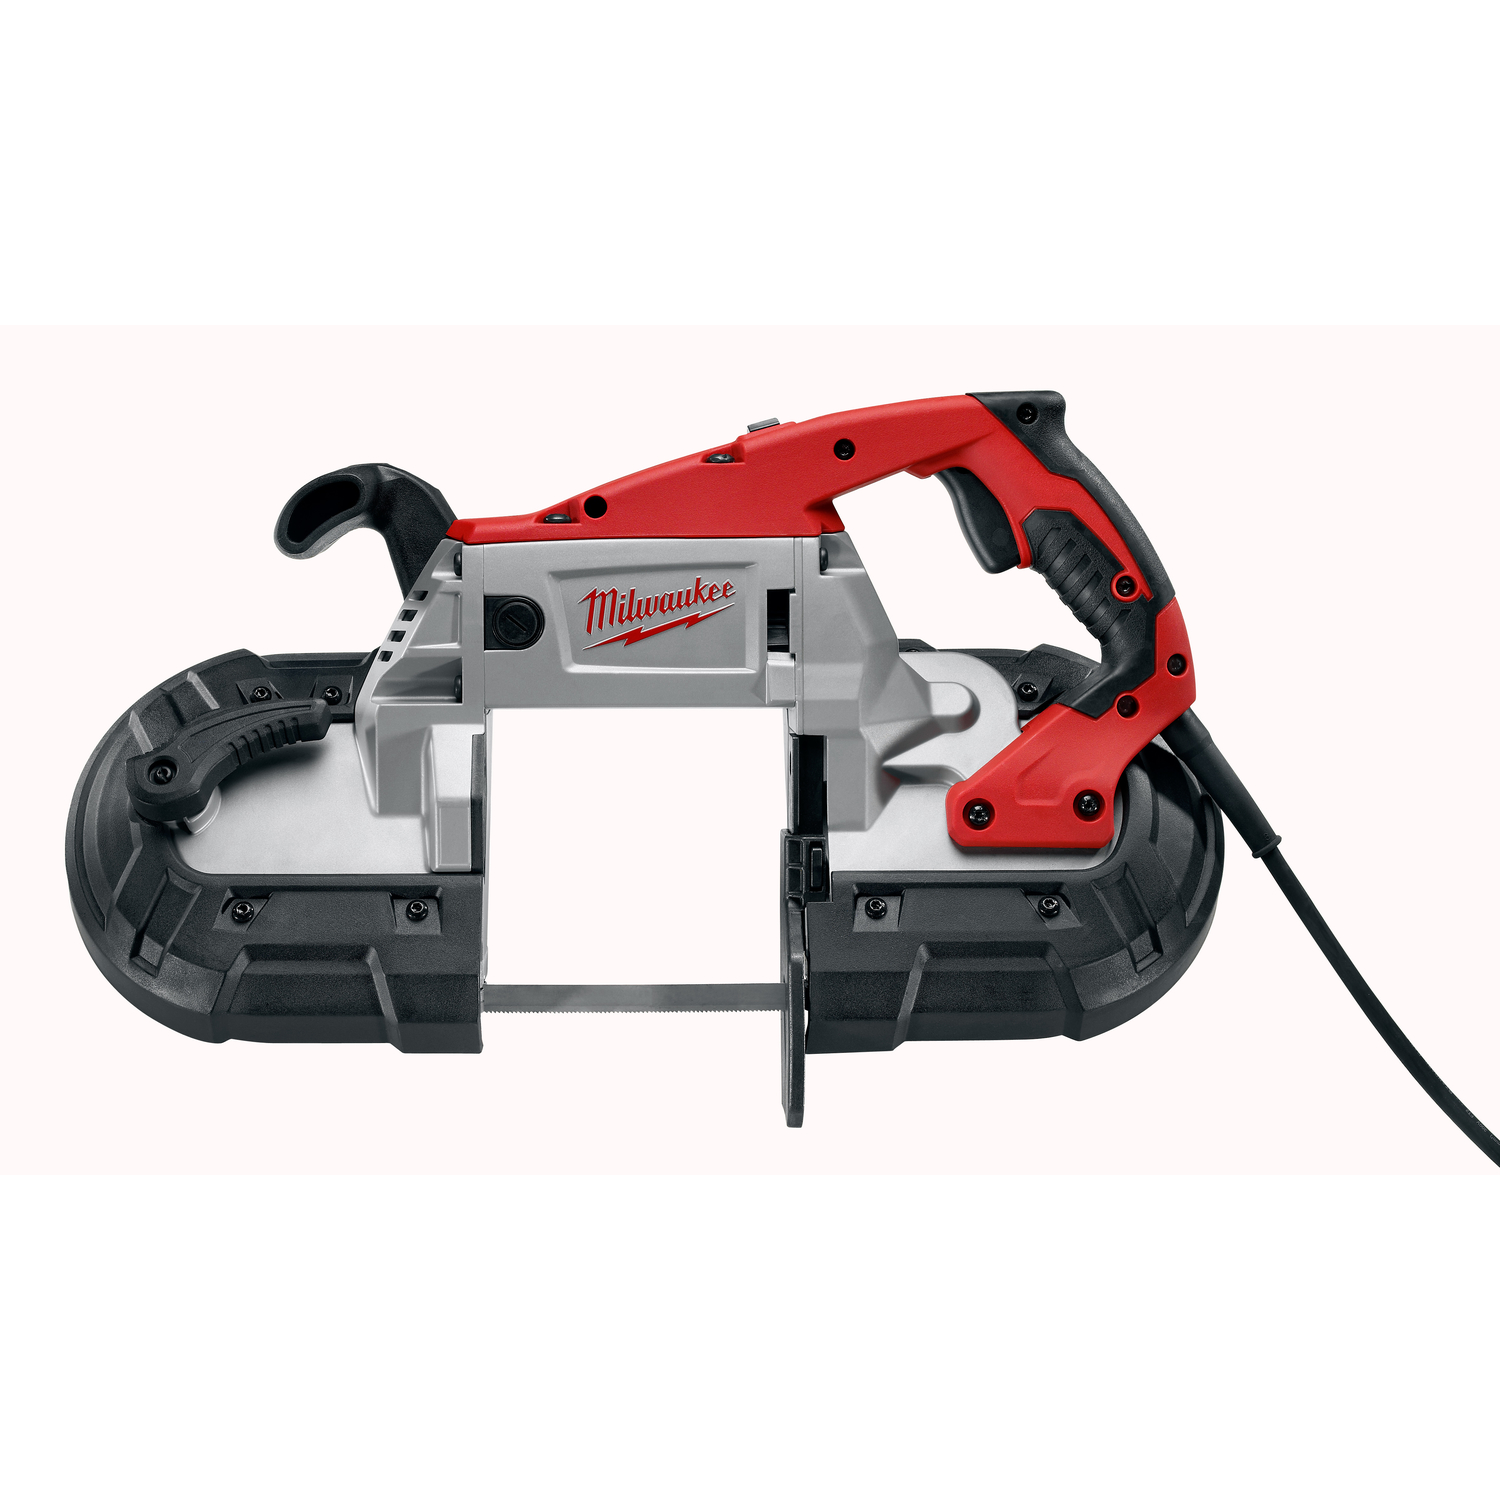 Milwaukee  44-7/8 in. Corded  Band Saw  120 volt 380  11 amps